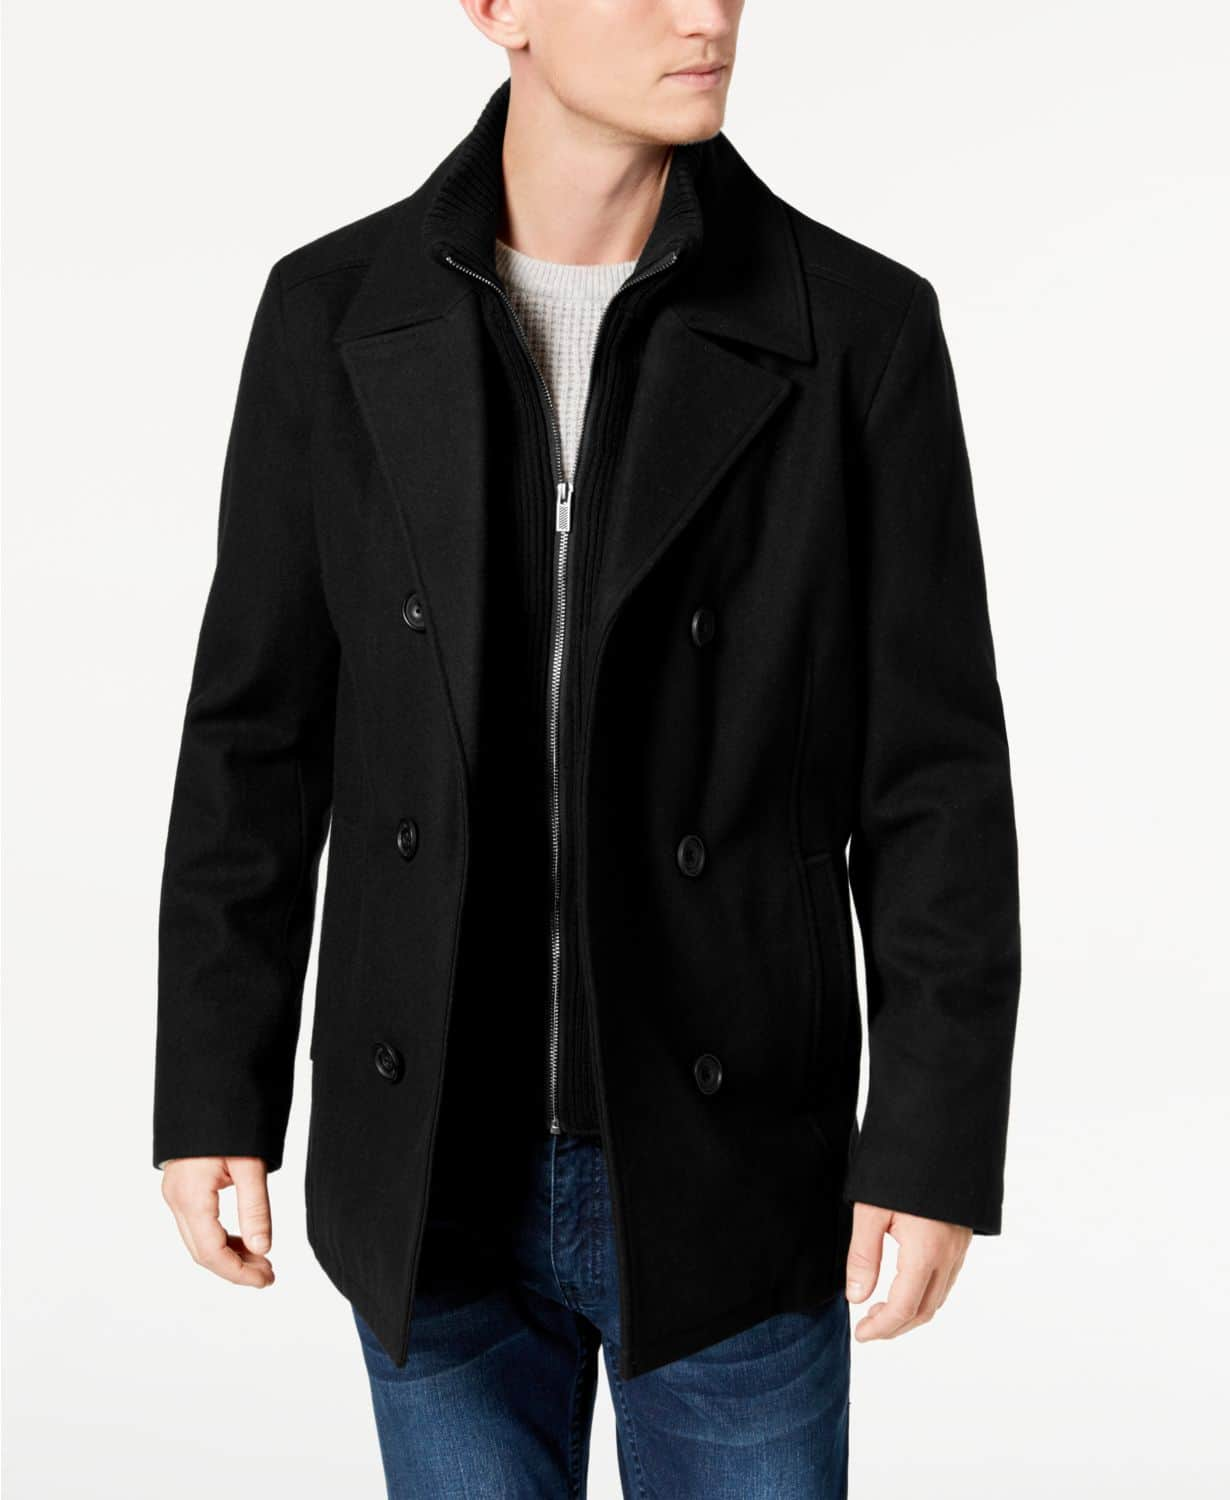 Kenneth Cole Men's Double Breasted Wool Blend Peacoat with Bib $80 + Free Shipping